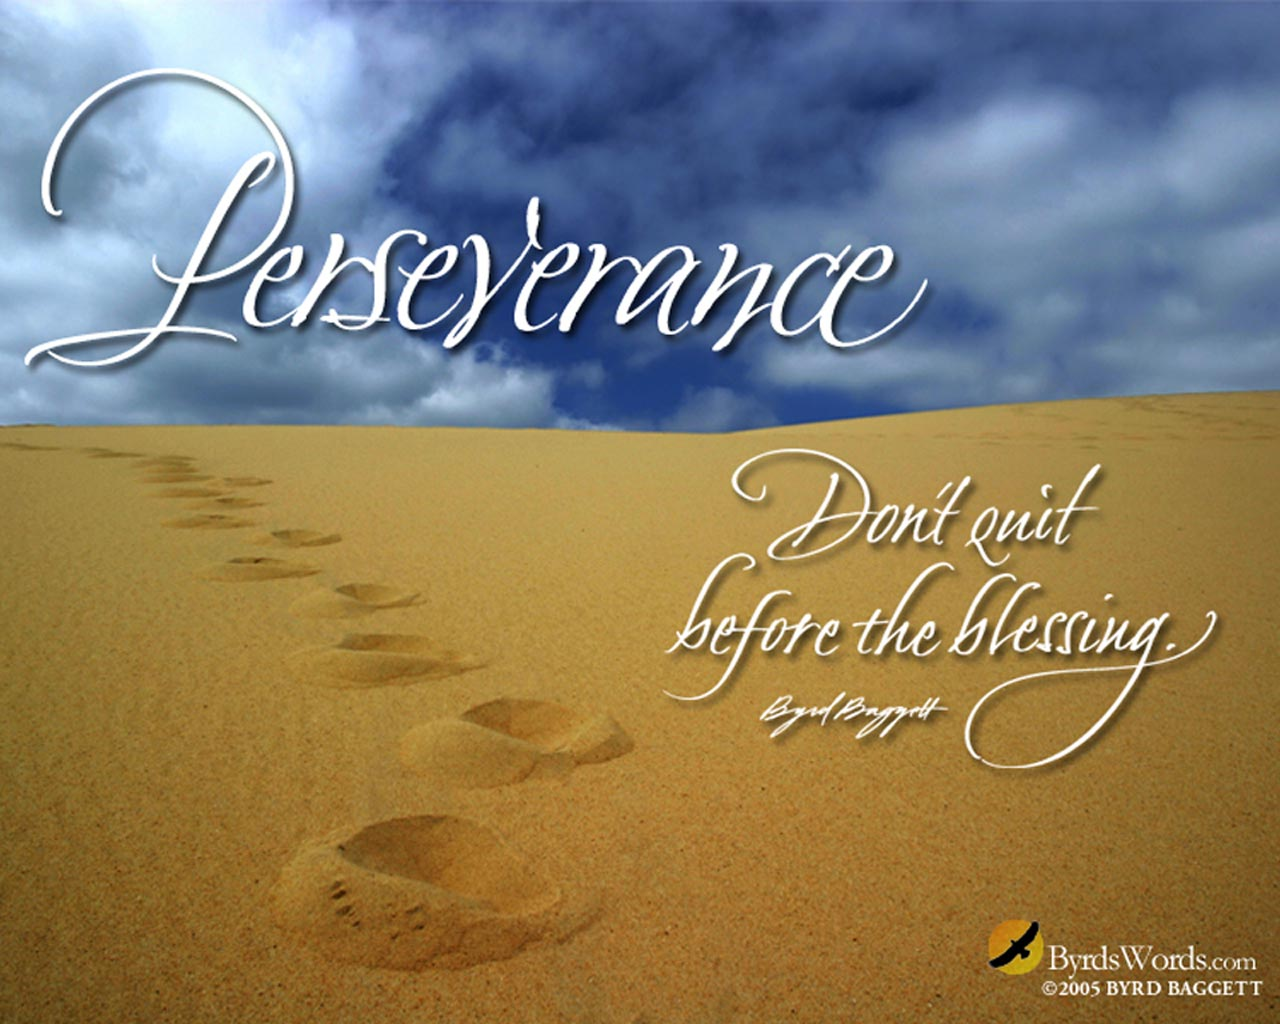 perseverance wallpaper motivational products by byrd baggett